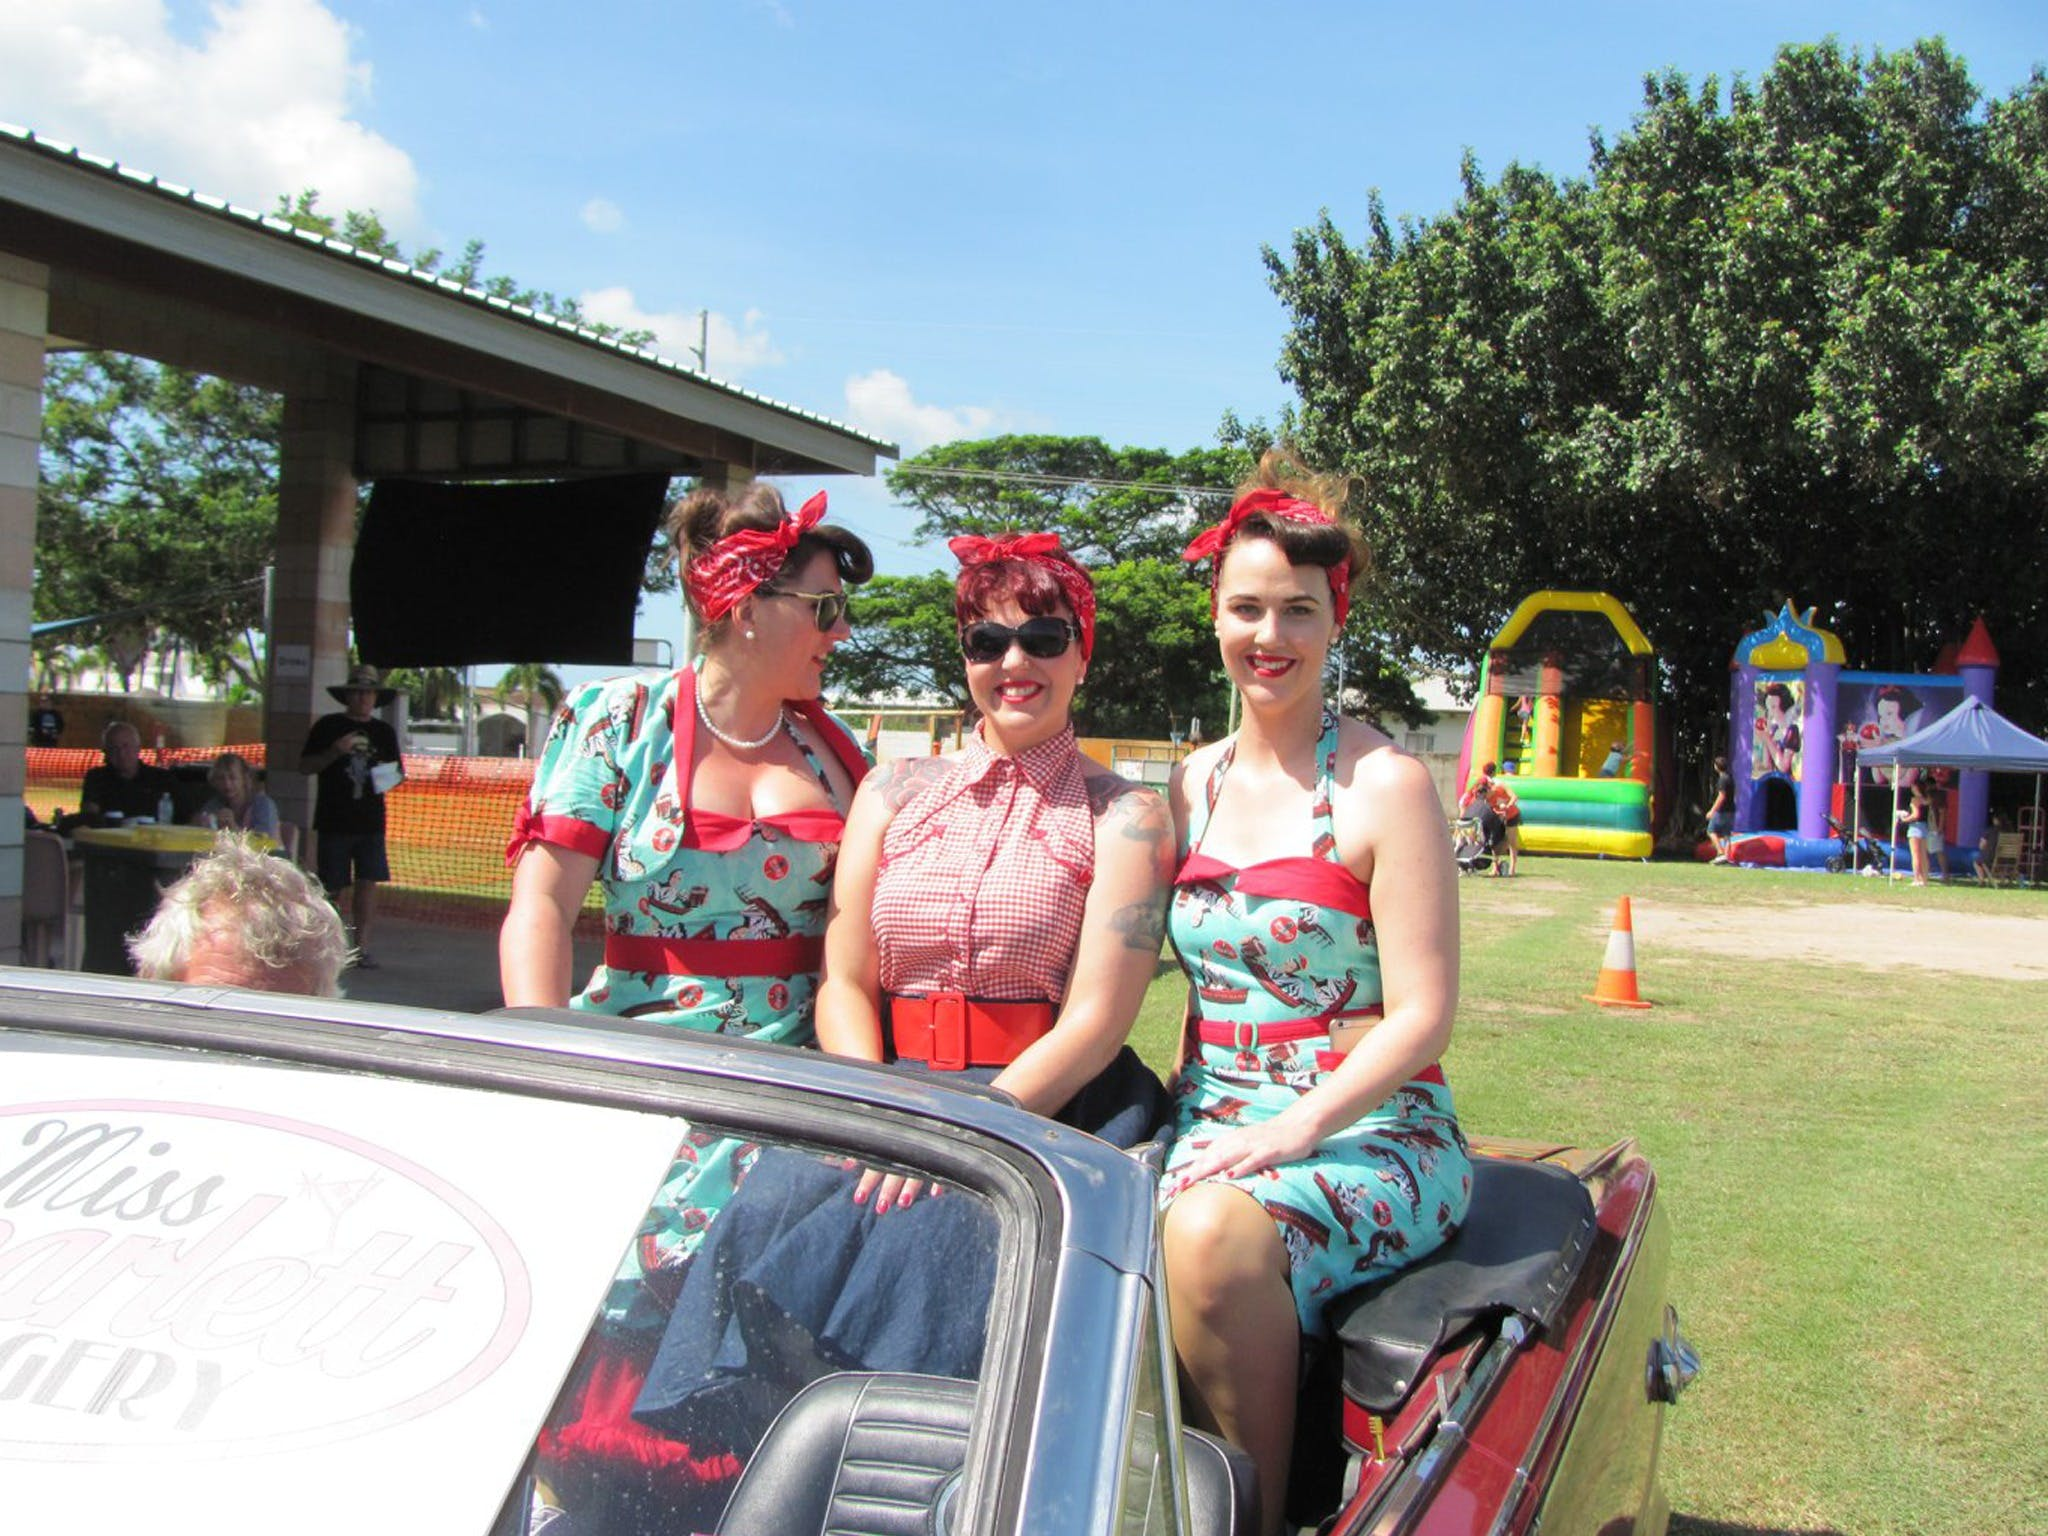 Burdekin Auto Festival - Accommodation Resorts